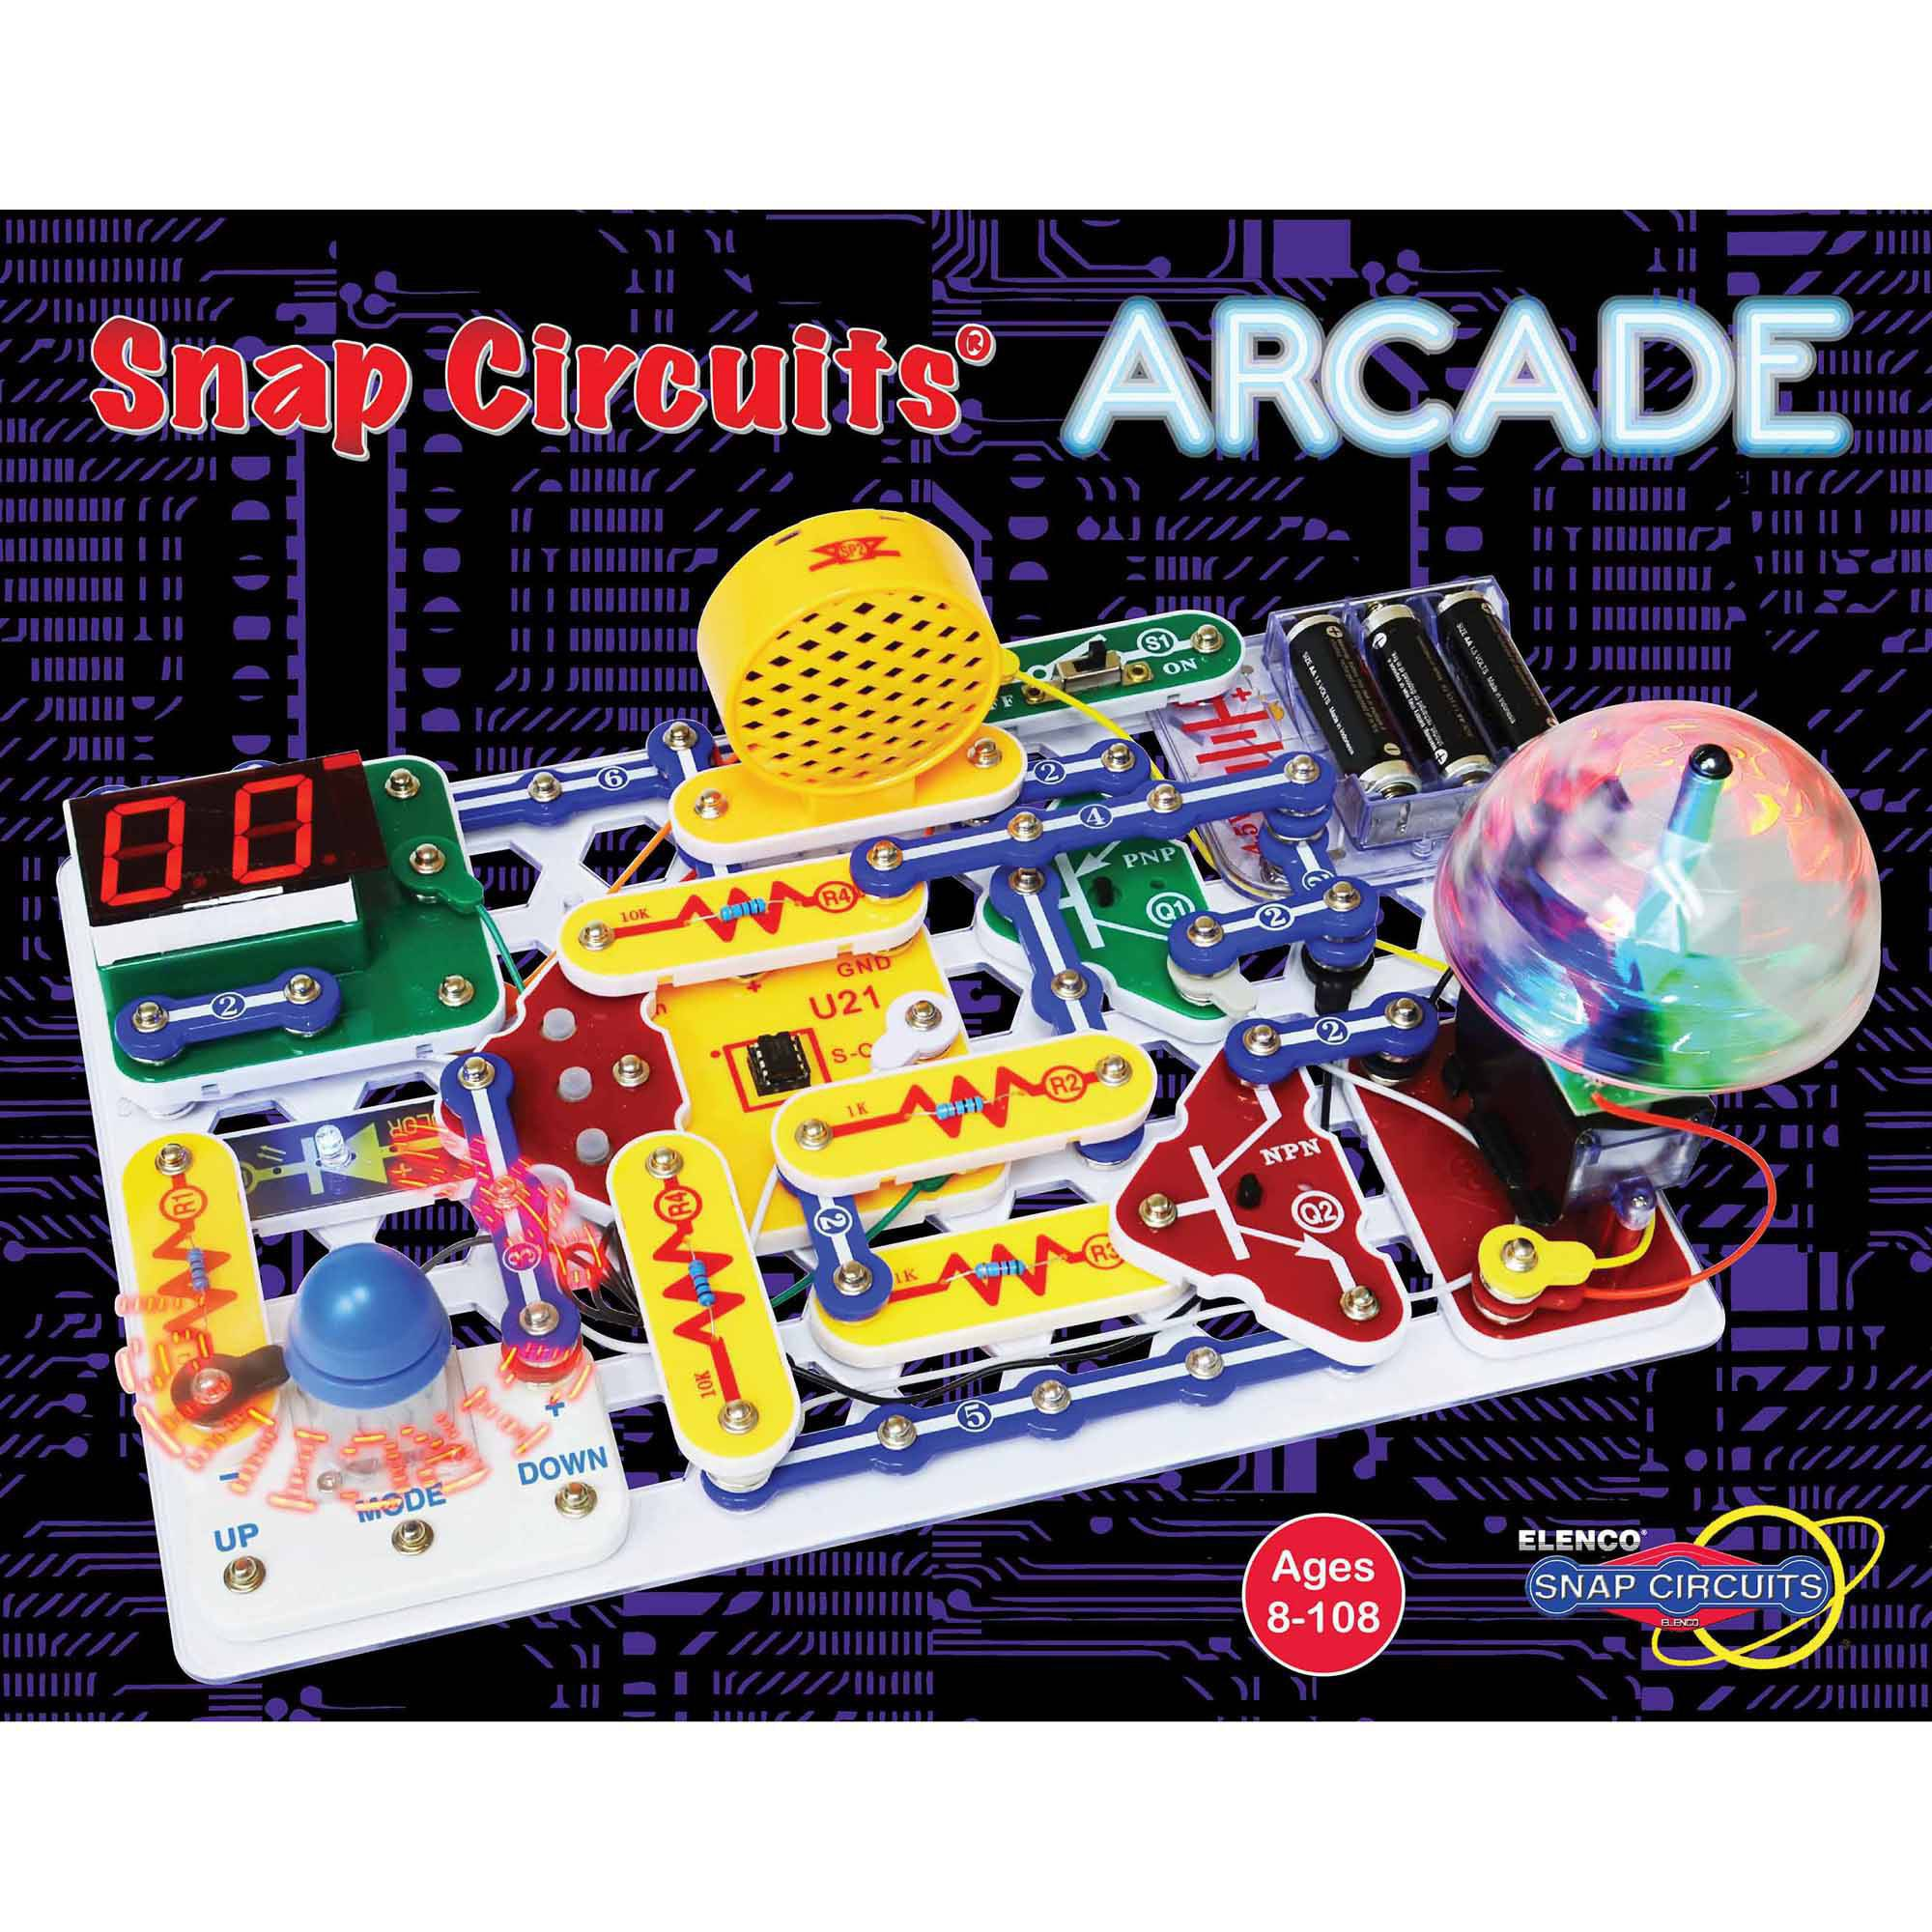 Elenco Electronics Snap Circuits Ask Answer Wiring Diagram Scg125 Green Alternative Energy Kit Learning Arcade Discovery Walmart Com Electronic